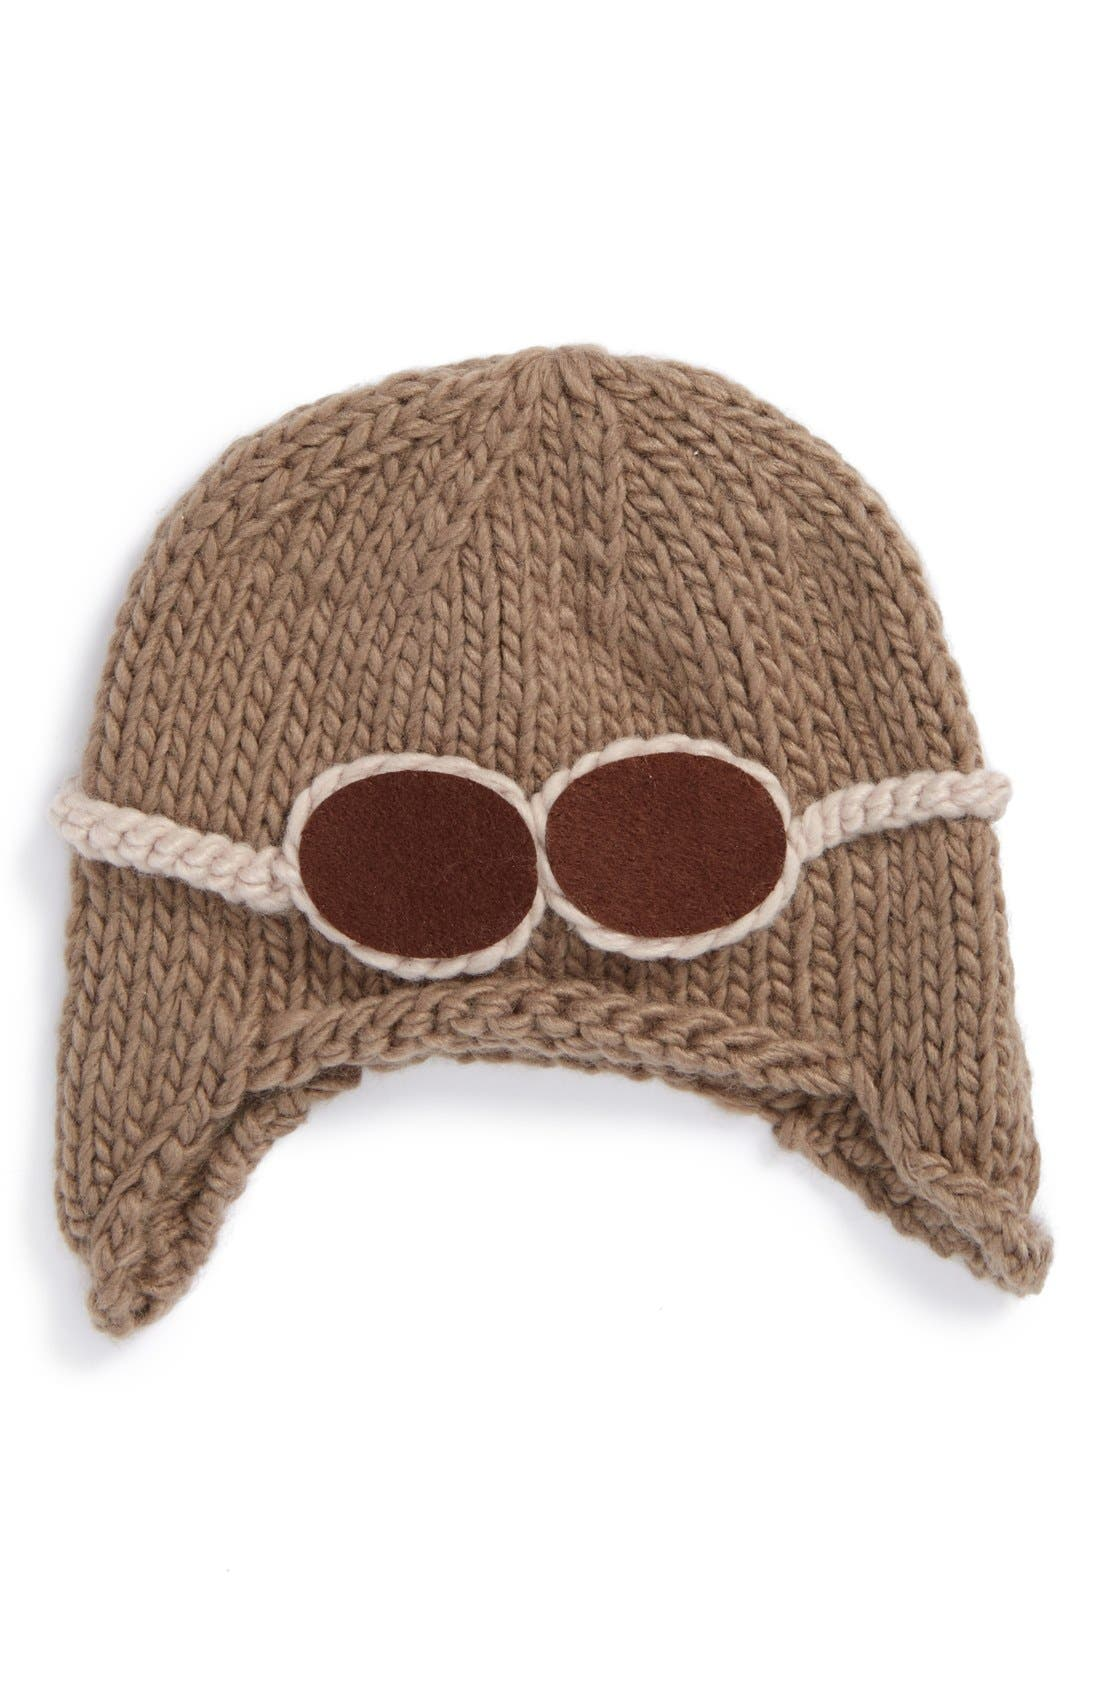 BLUEBERRY HILL 'Wilber Aviator' Knit Hat